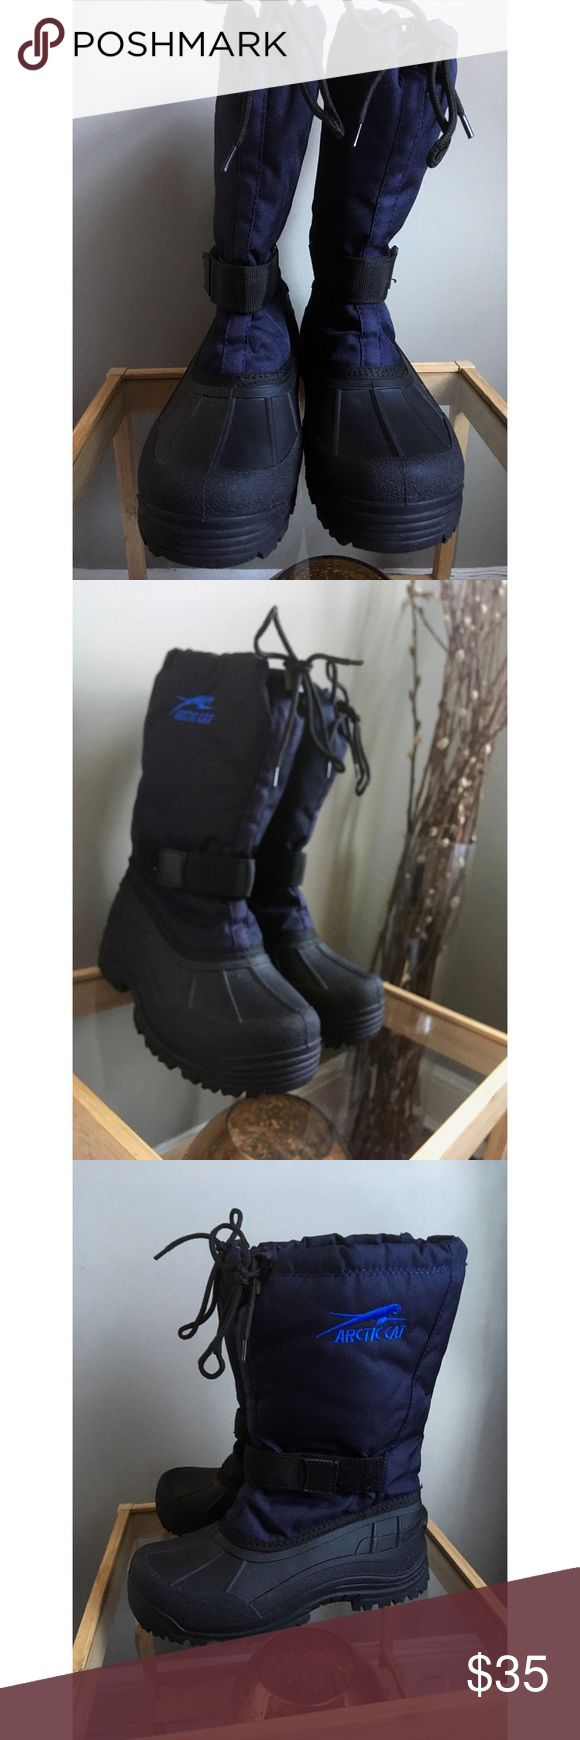 NWOB Snow Boots These are brand new!! If you deal with regular snow where you live you'll understand how important heavy duty boots are! They're lined, waterproof, and in perfect condition. Only ever tried on. Reasonable offers considered! Shoes Winter & Rain Boots